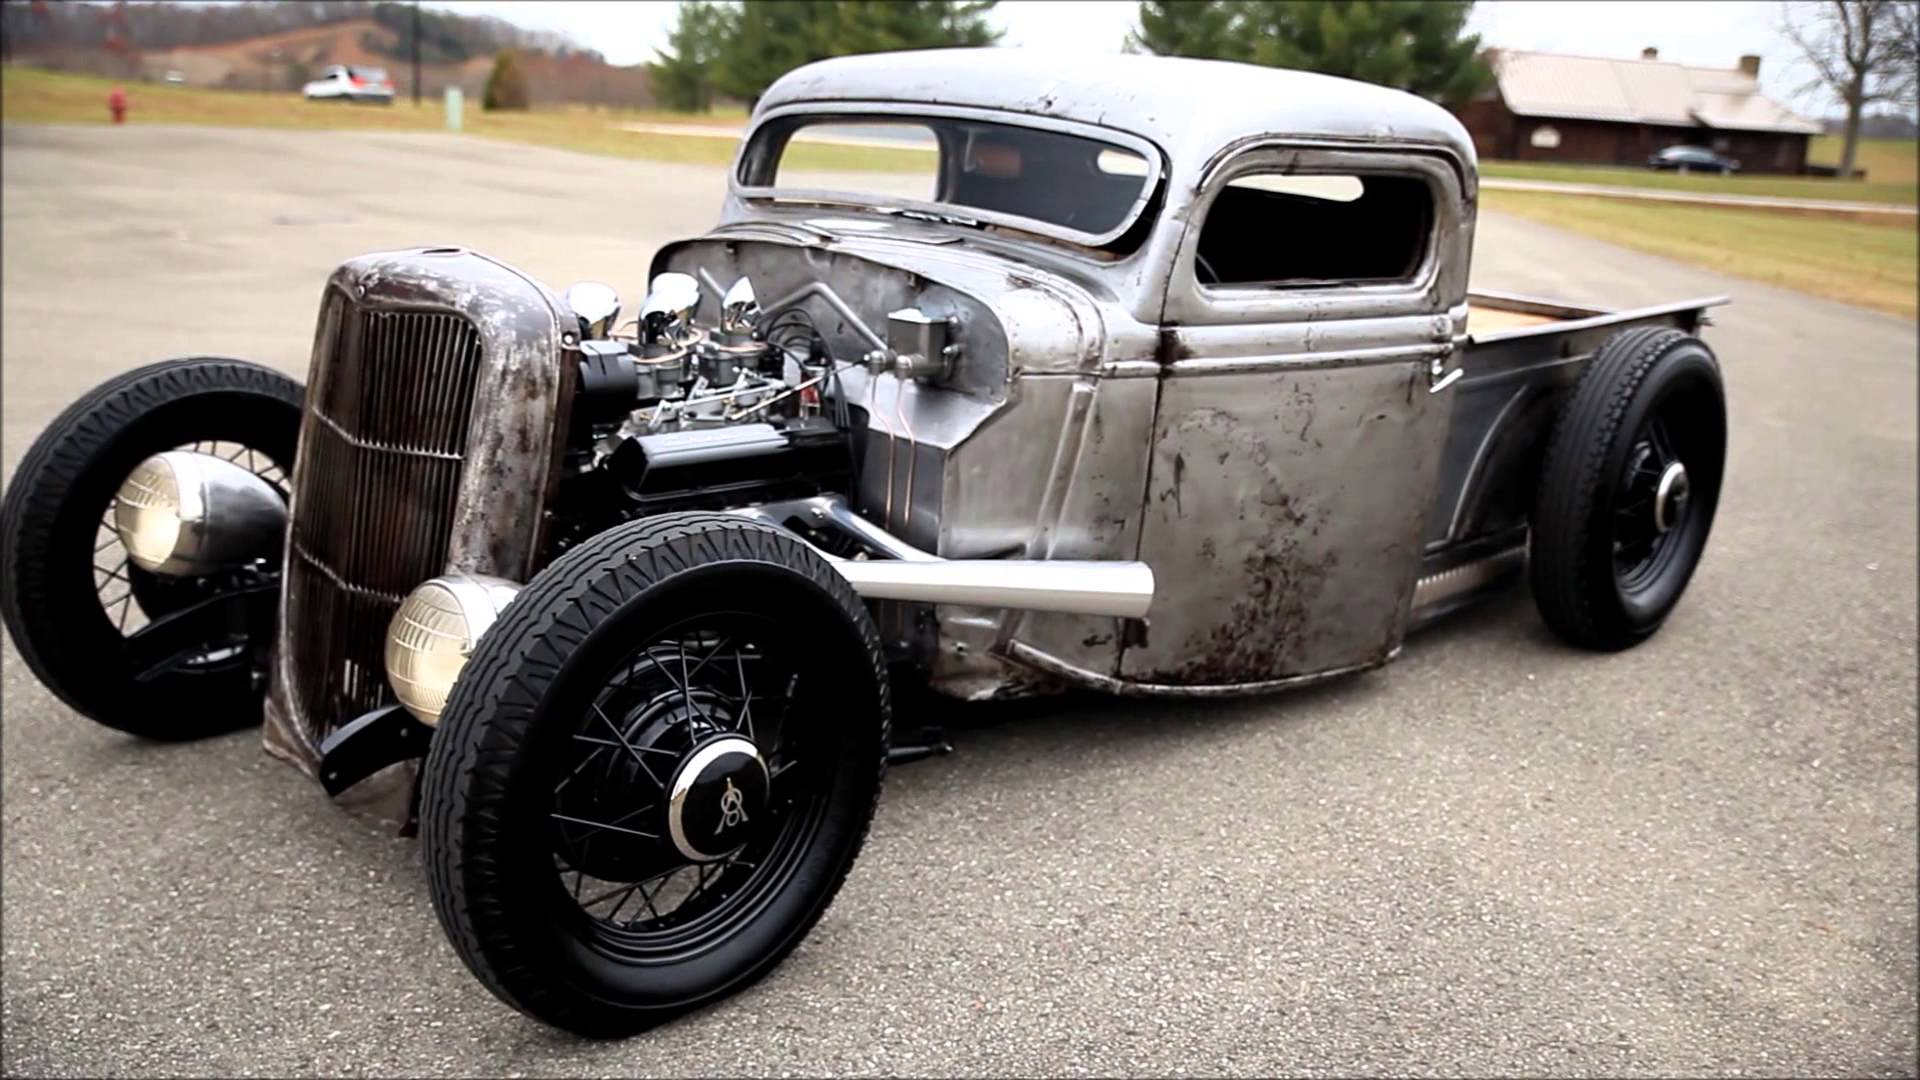 1935 Bare Metal Rat Rod Ford Pickup Will Leave You Breathless